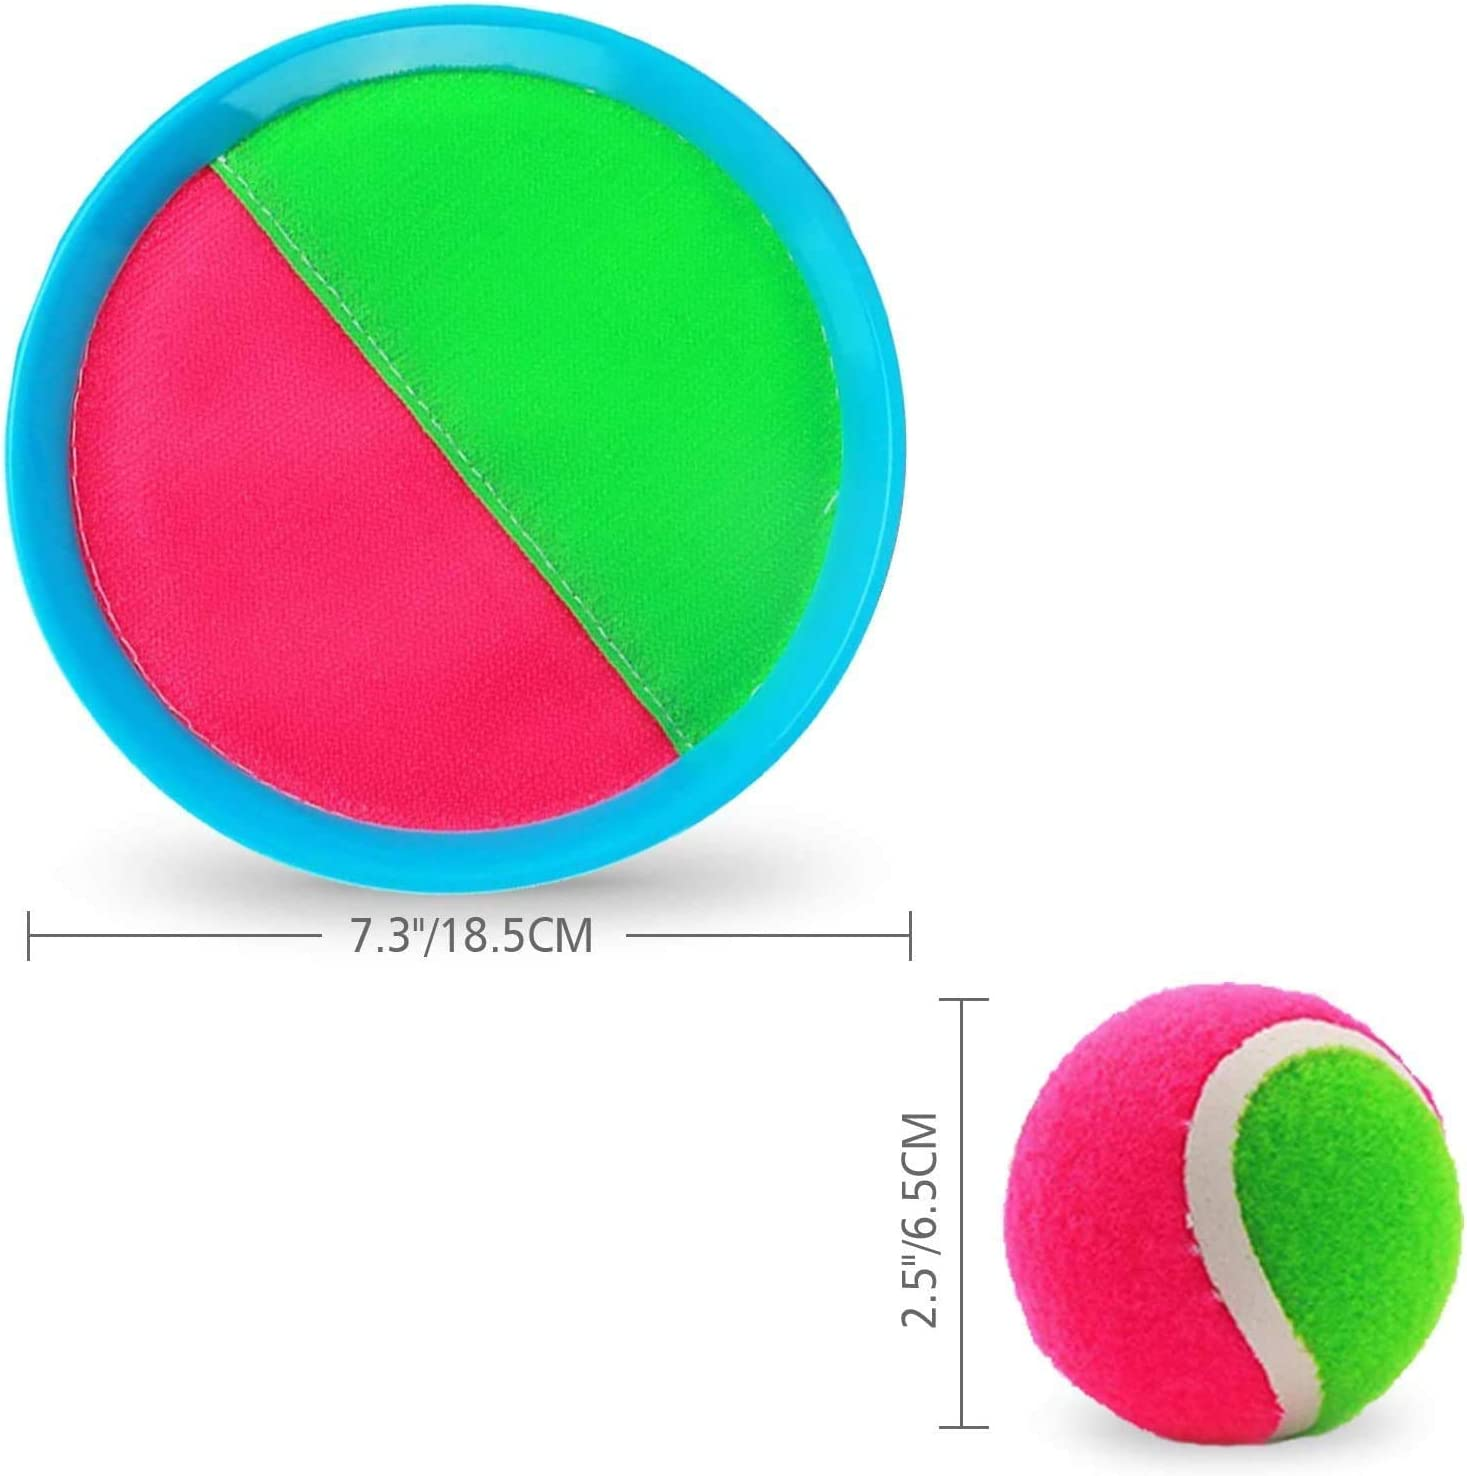 Outdoor Sport Balls Game Toys for Boys Girls Kids Abbiline Ball and Catch Game-Paddles Toss and Catch Ball Set with 2 Paddles 2 Balls